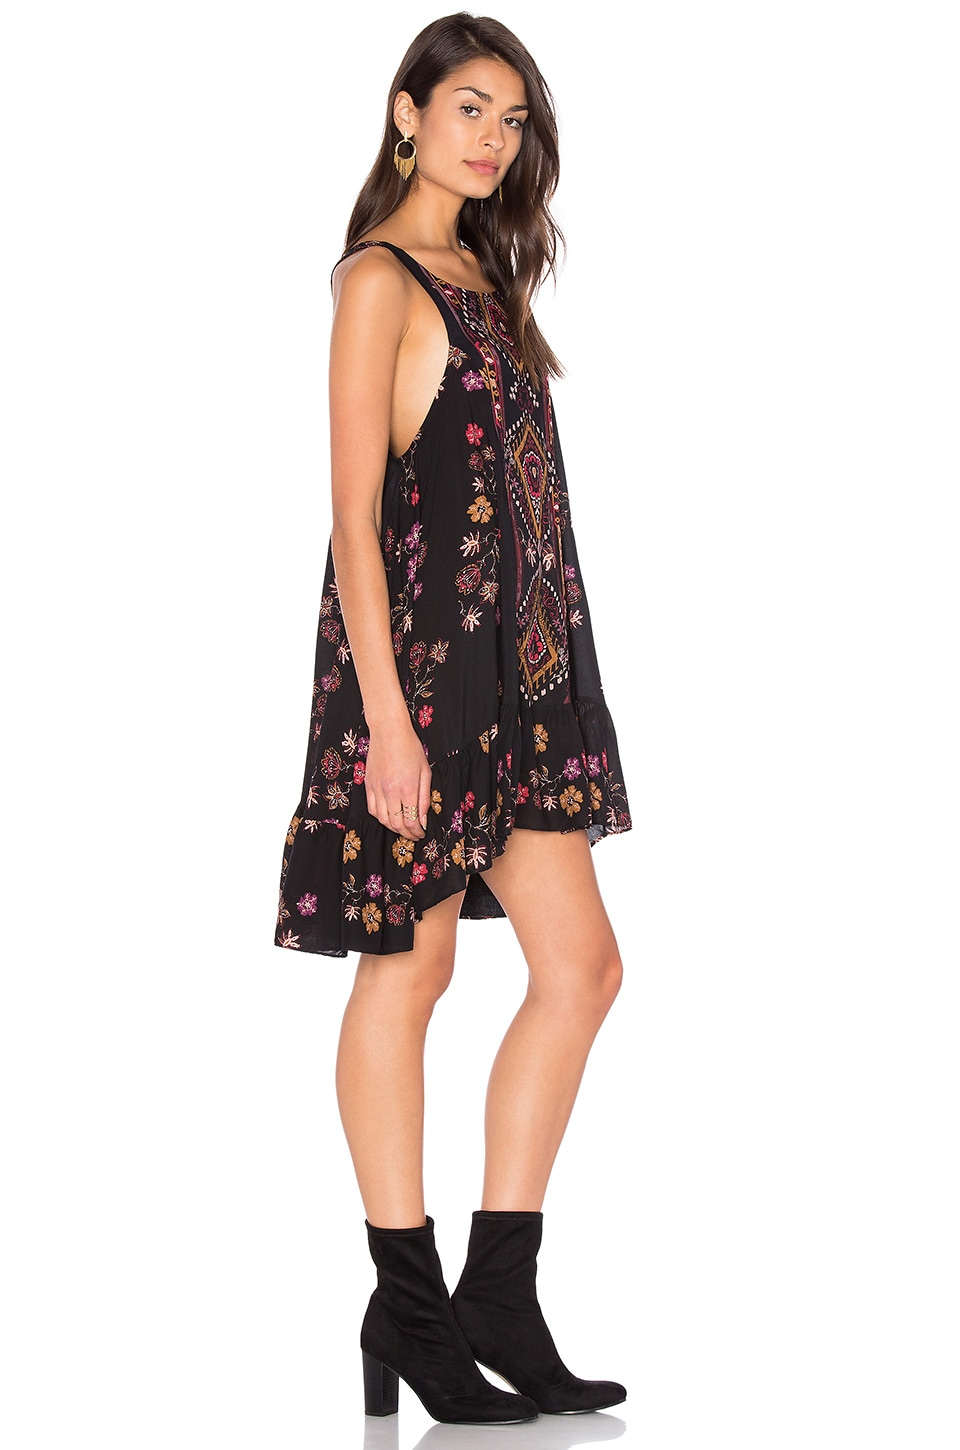 Free People Annka Boarder Slip Dress in Black Combo